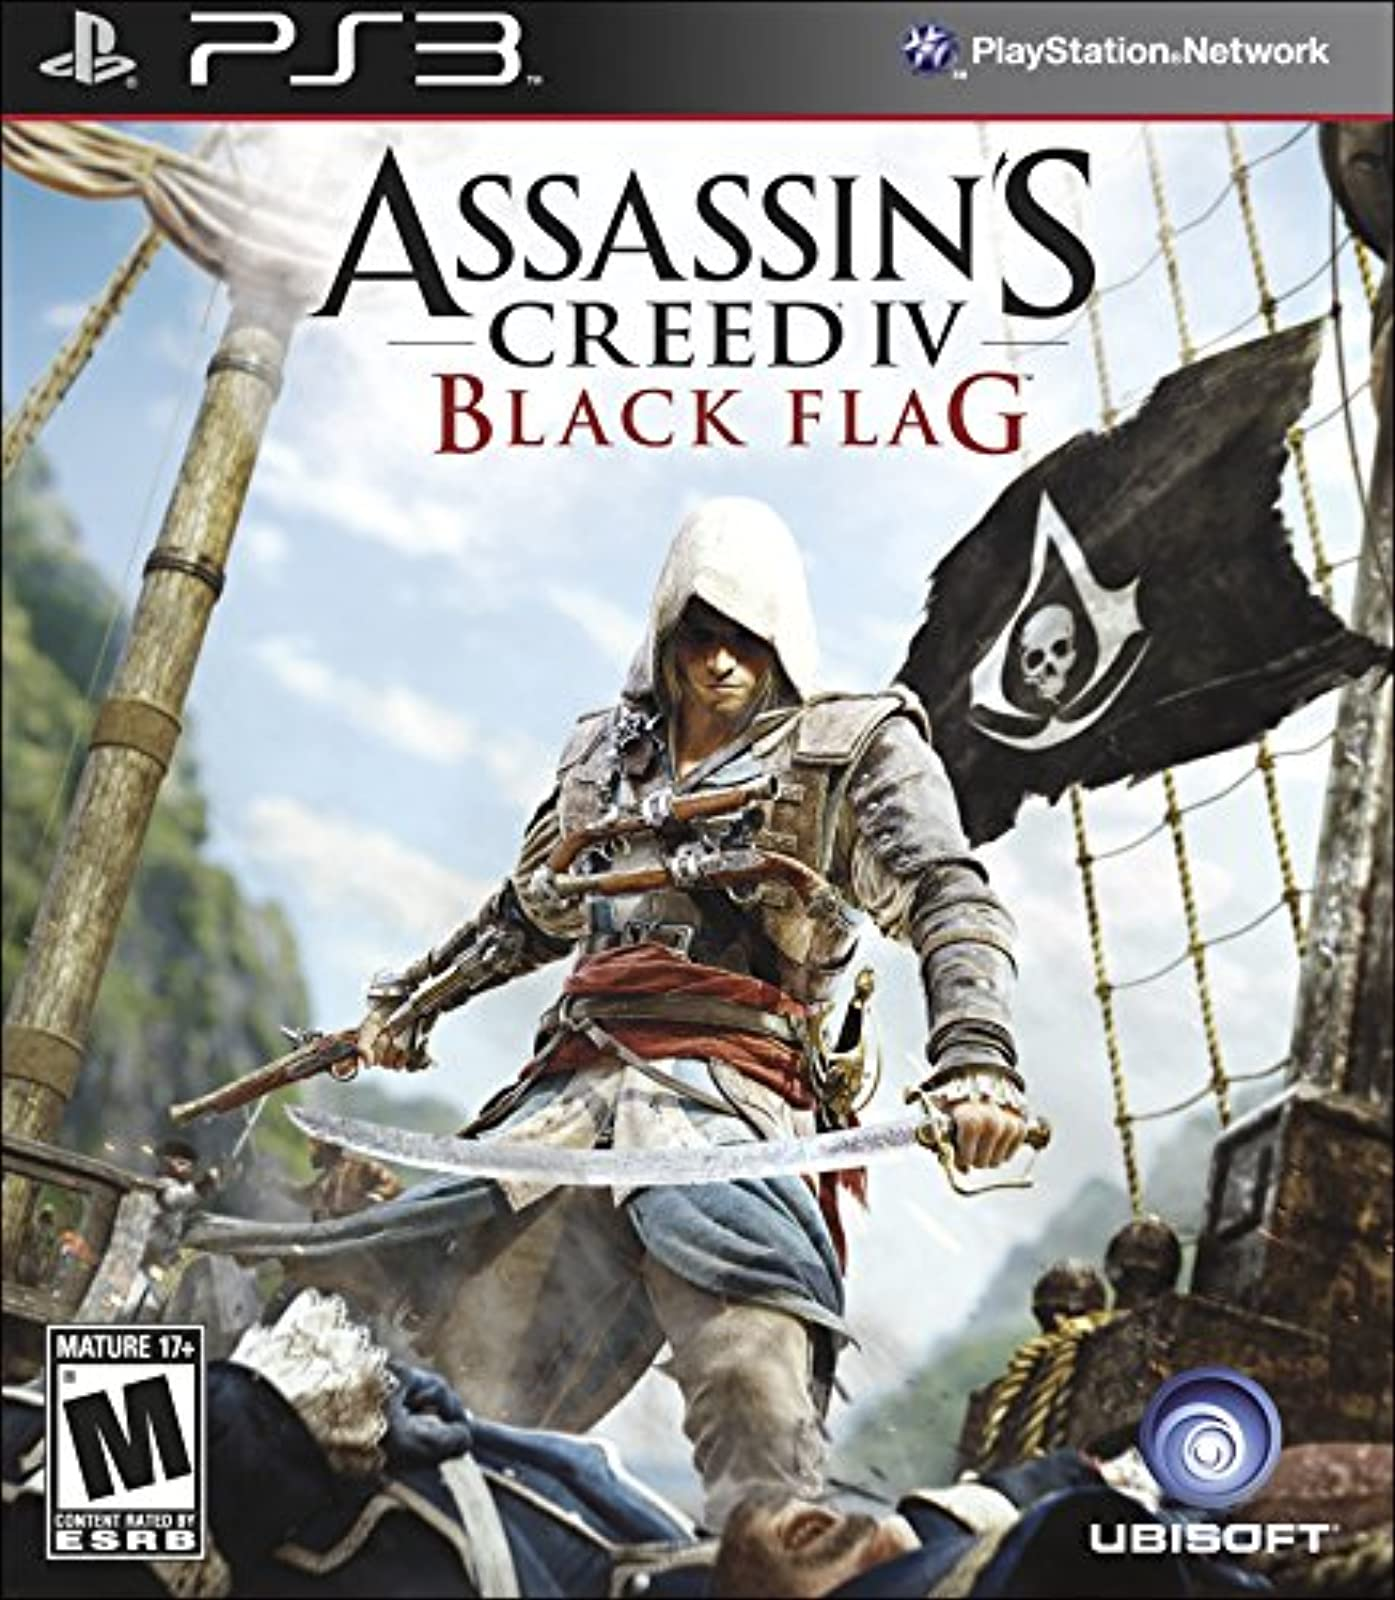 Assassin's Creed IV Black Flag For PlayStation 3 PS3 Fighting